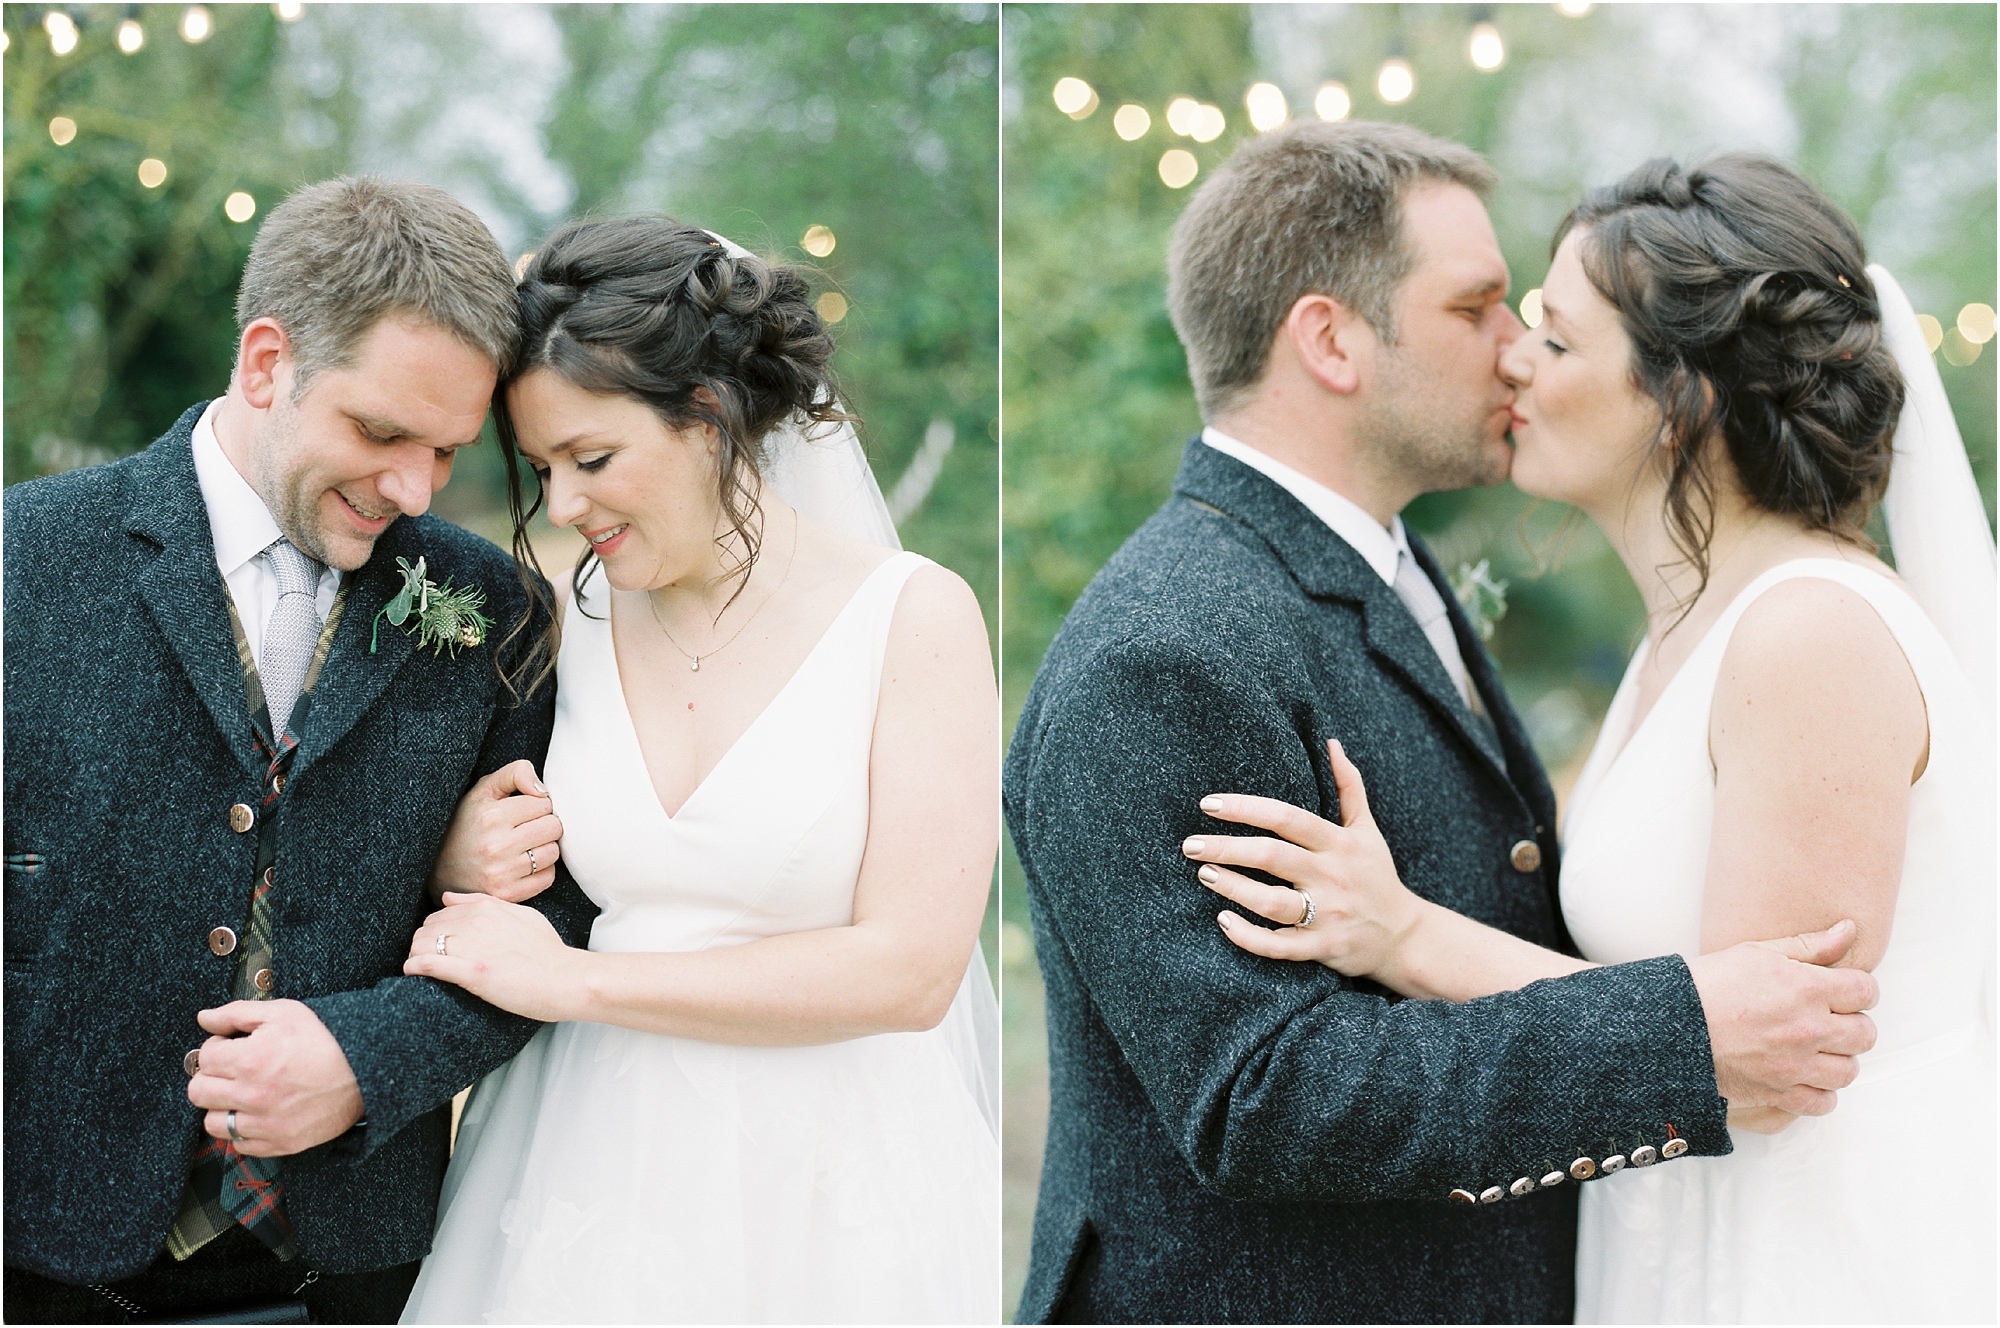 romantic bride and groom photos